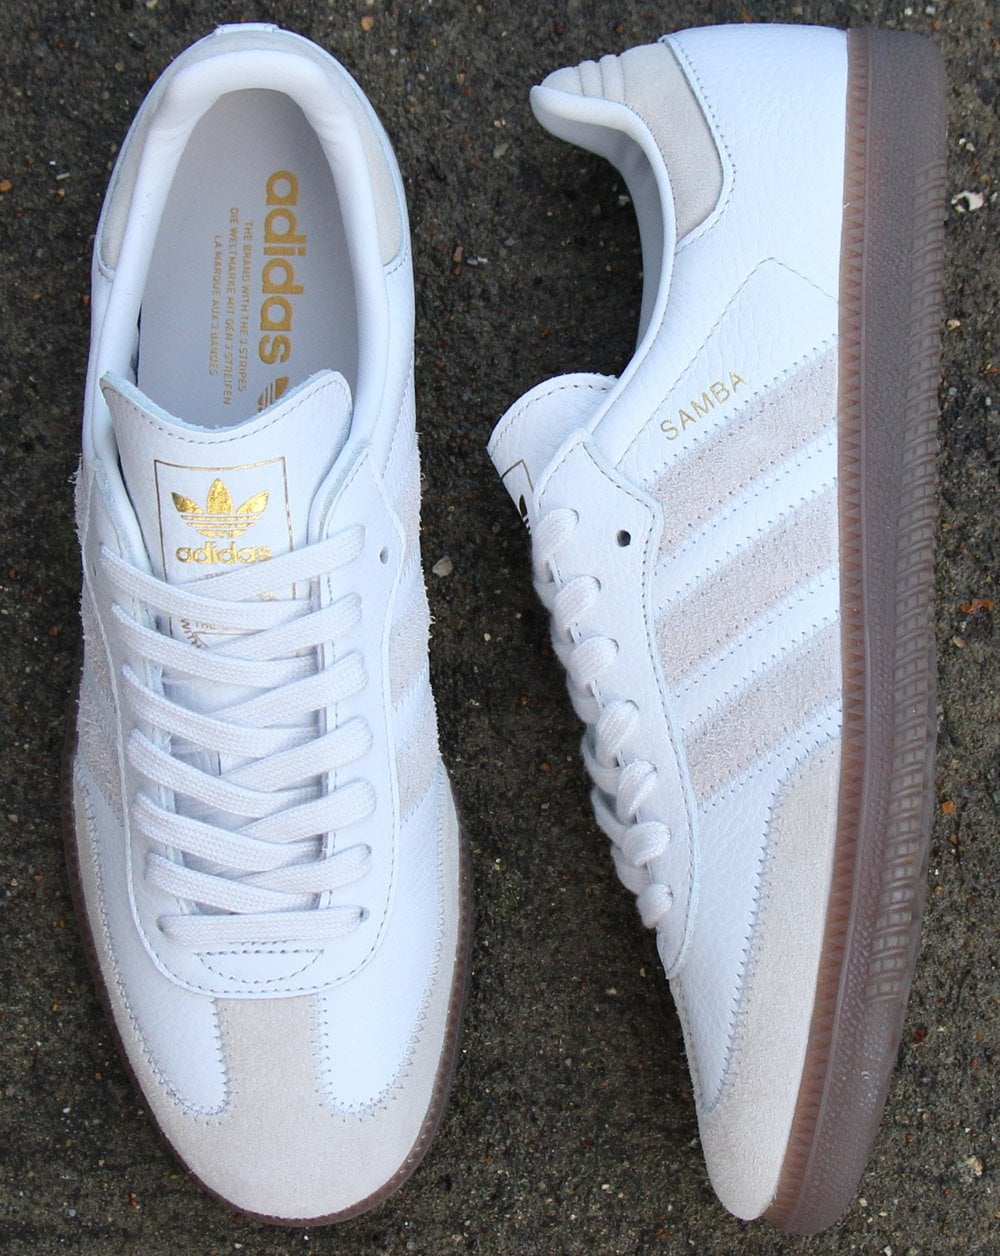 adidas Trainers Adidas Samba Og Ft Trainers Crystal White 65d57b196